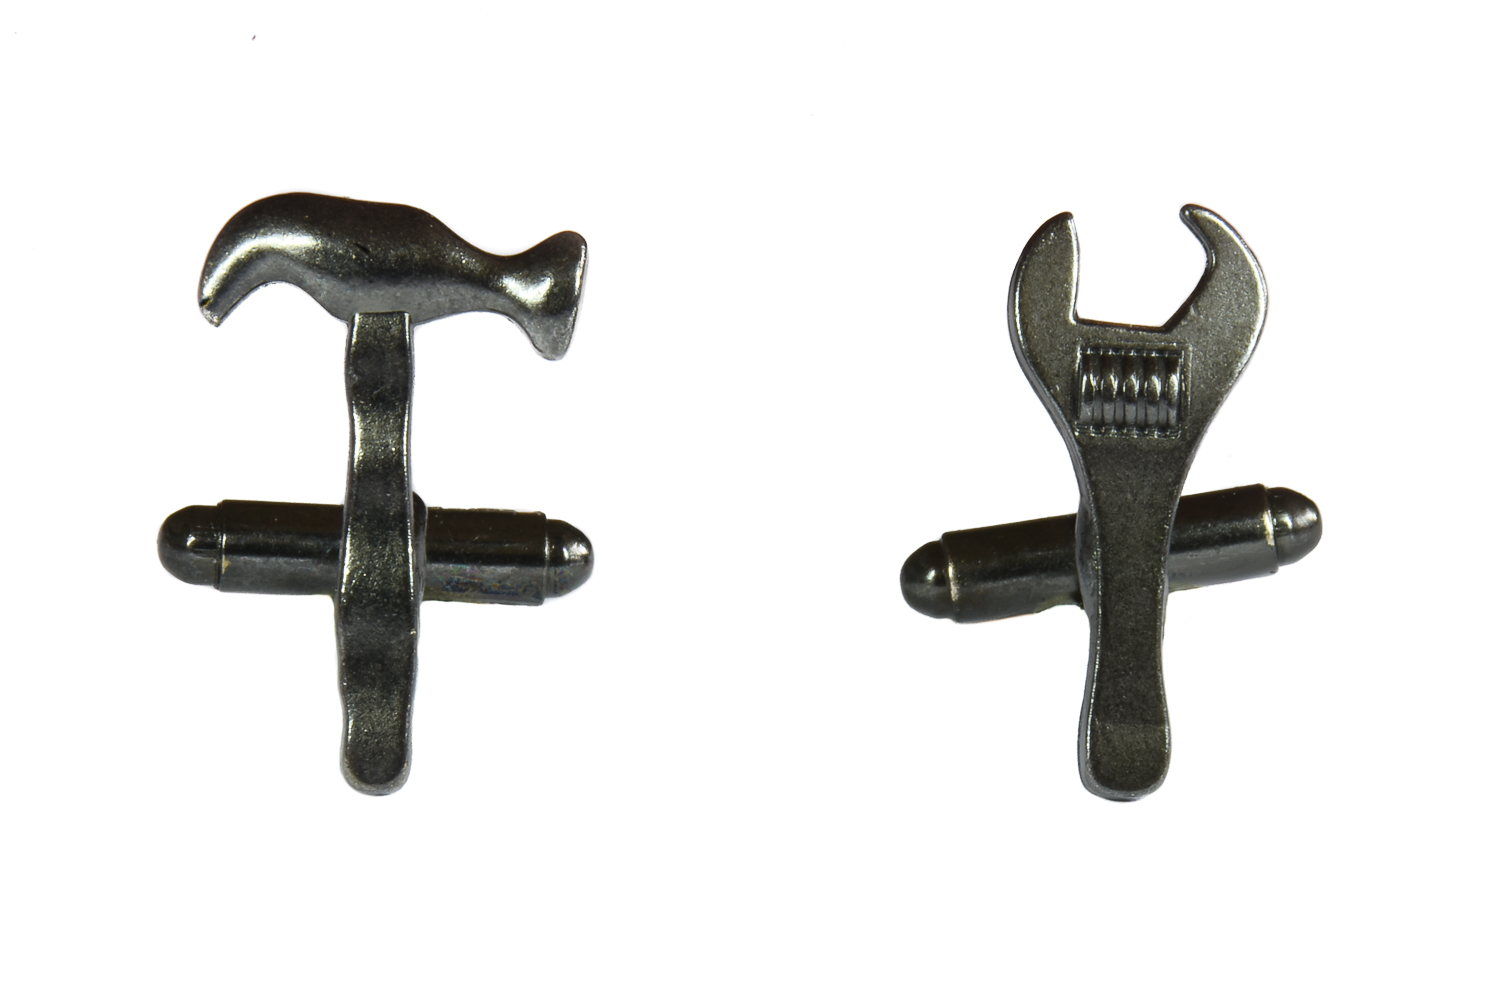 Hammer and Spanner Tools Cufflinks